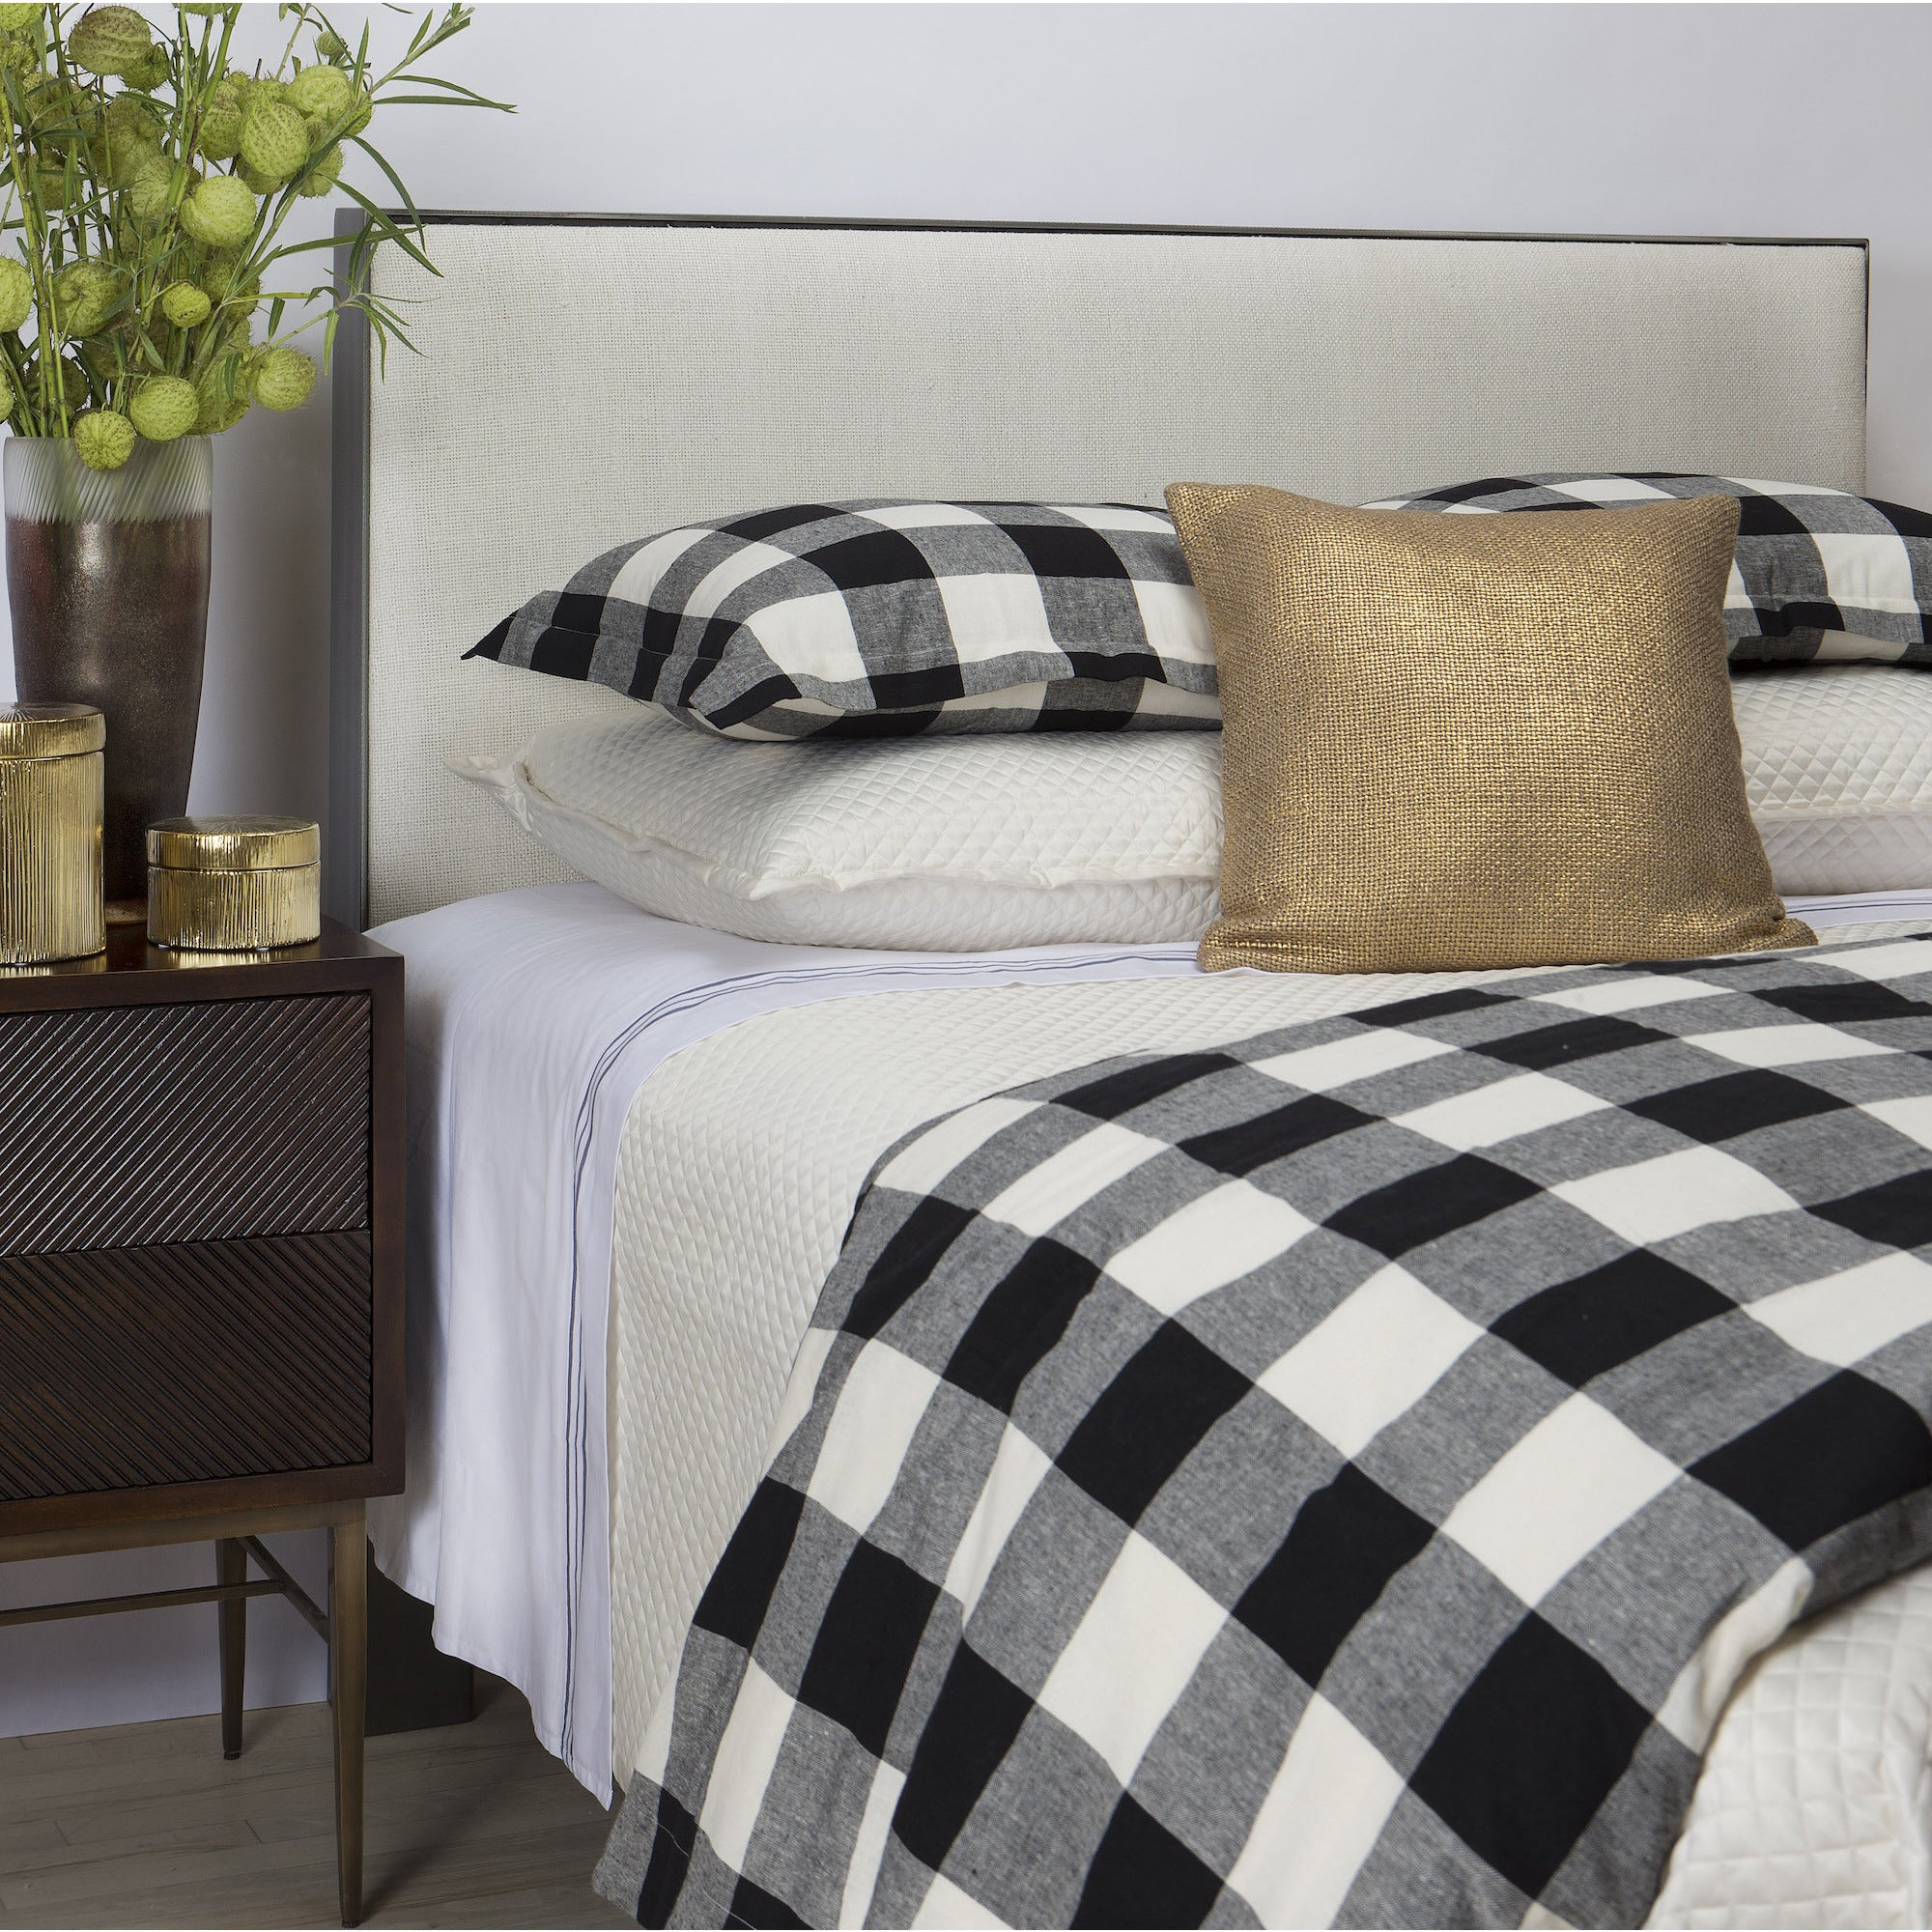 Art of Home from Ann Gish Black and White Plaid Duvet Set...